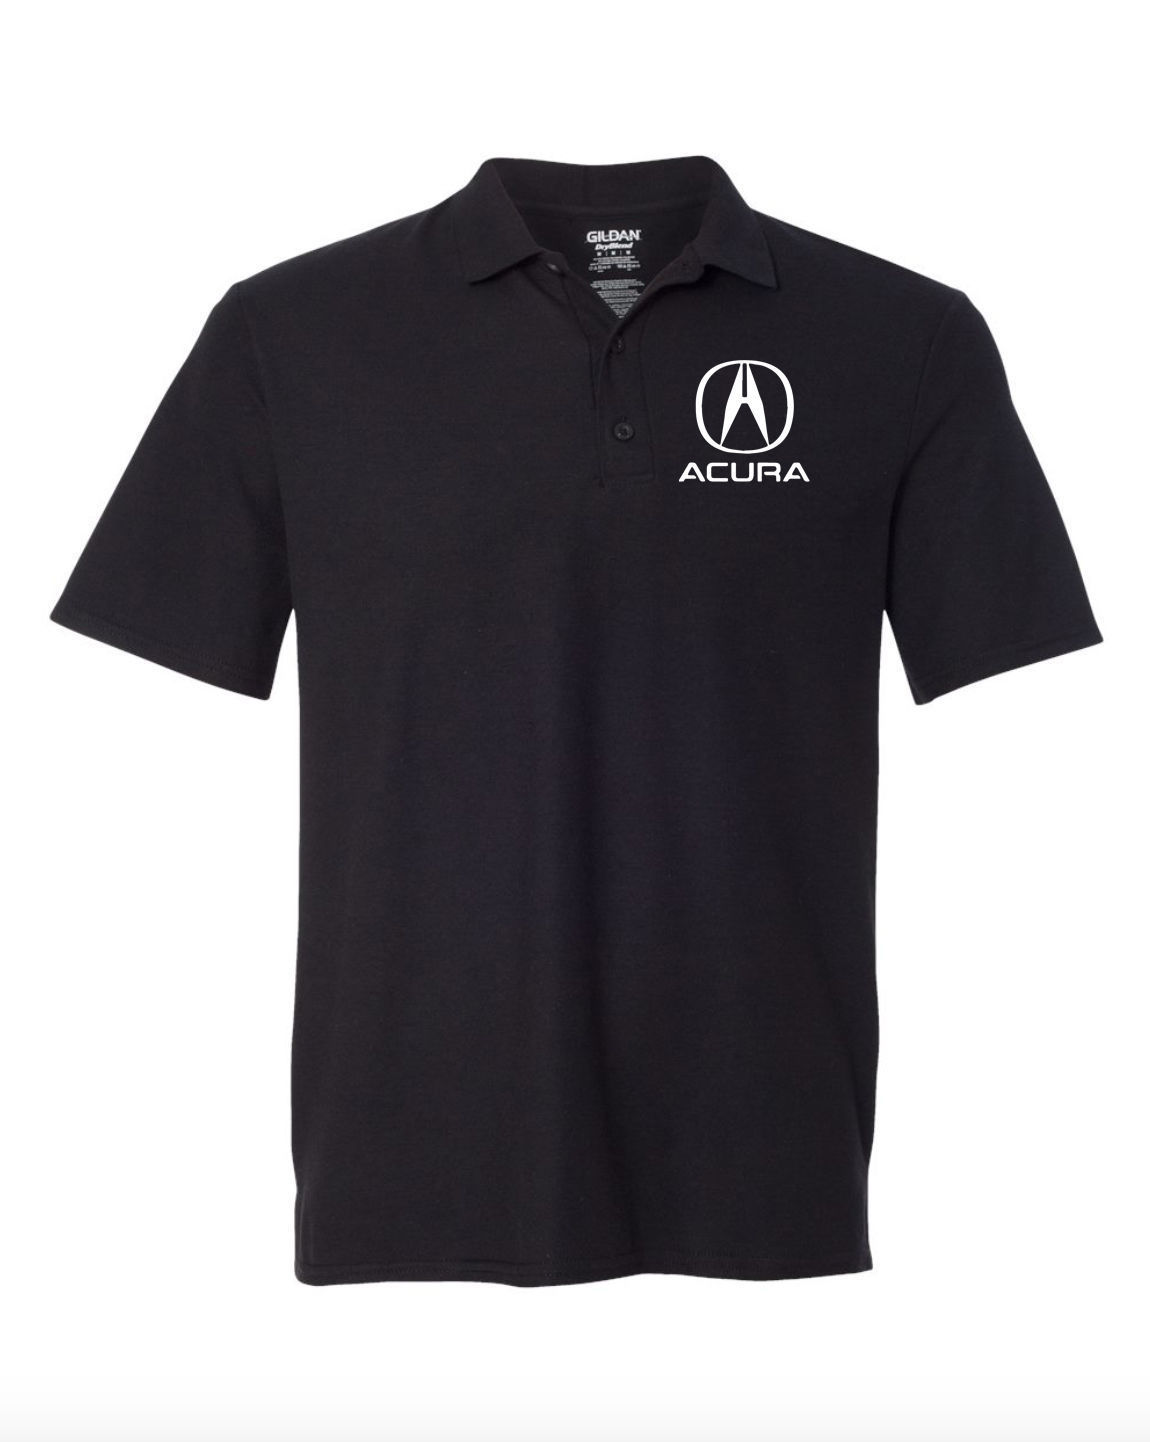 Acura Motor Black POLO T-Shirt